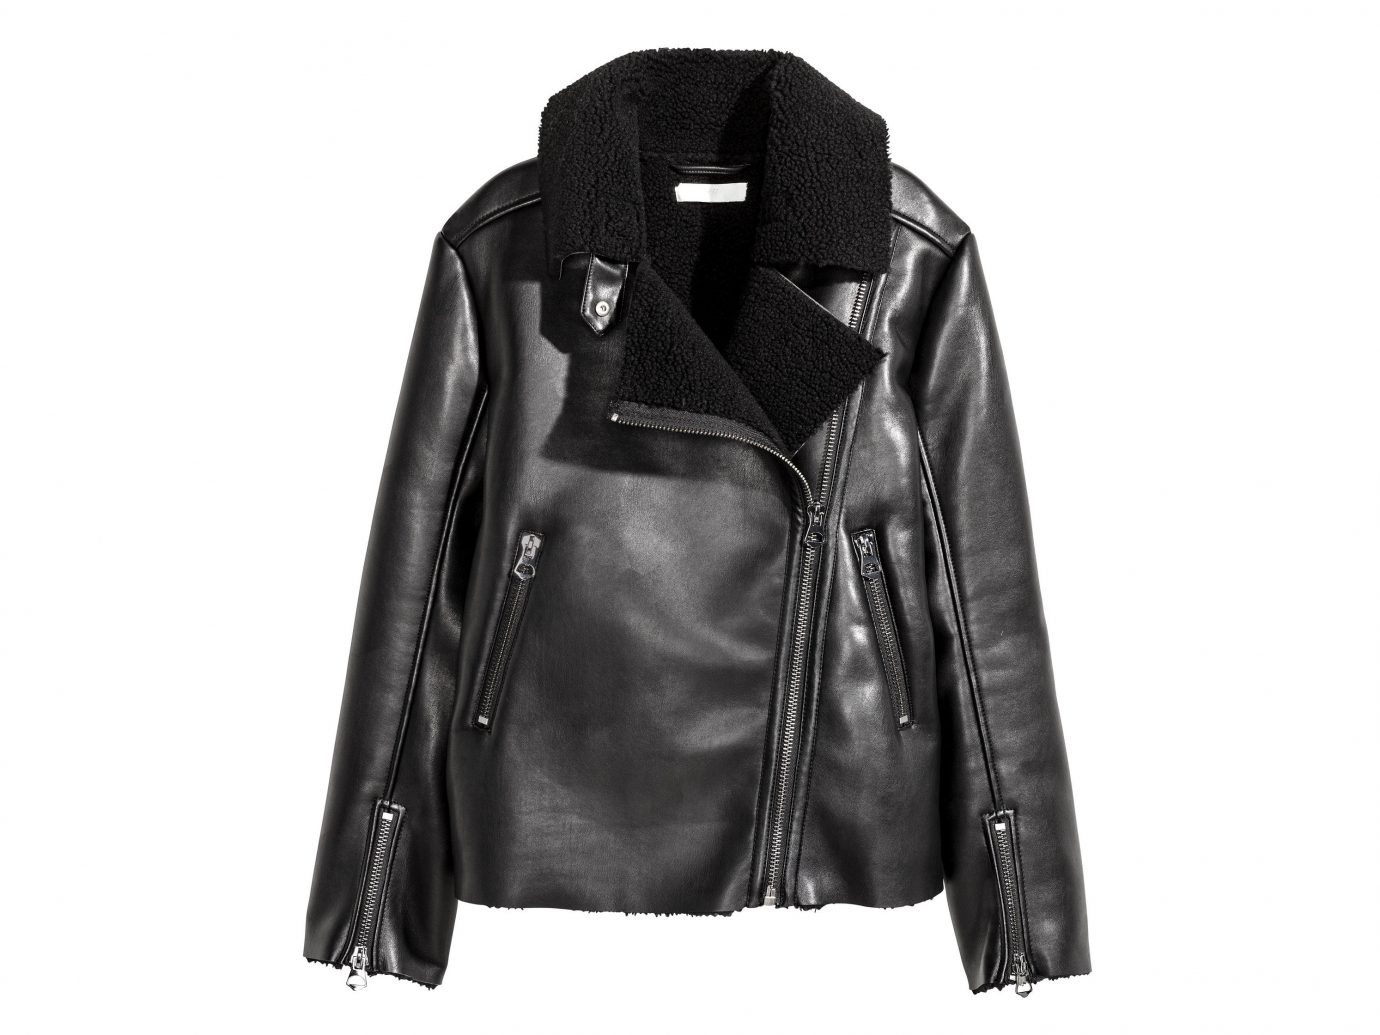 Style + Design clothing jacket leather leather jacket person wearing coat outerwear textile suit material sleeve backpack dressed